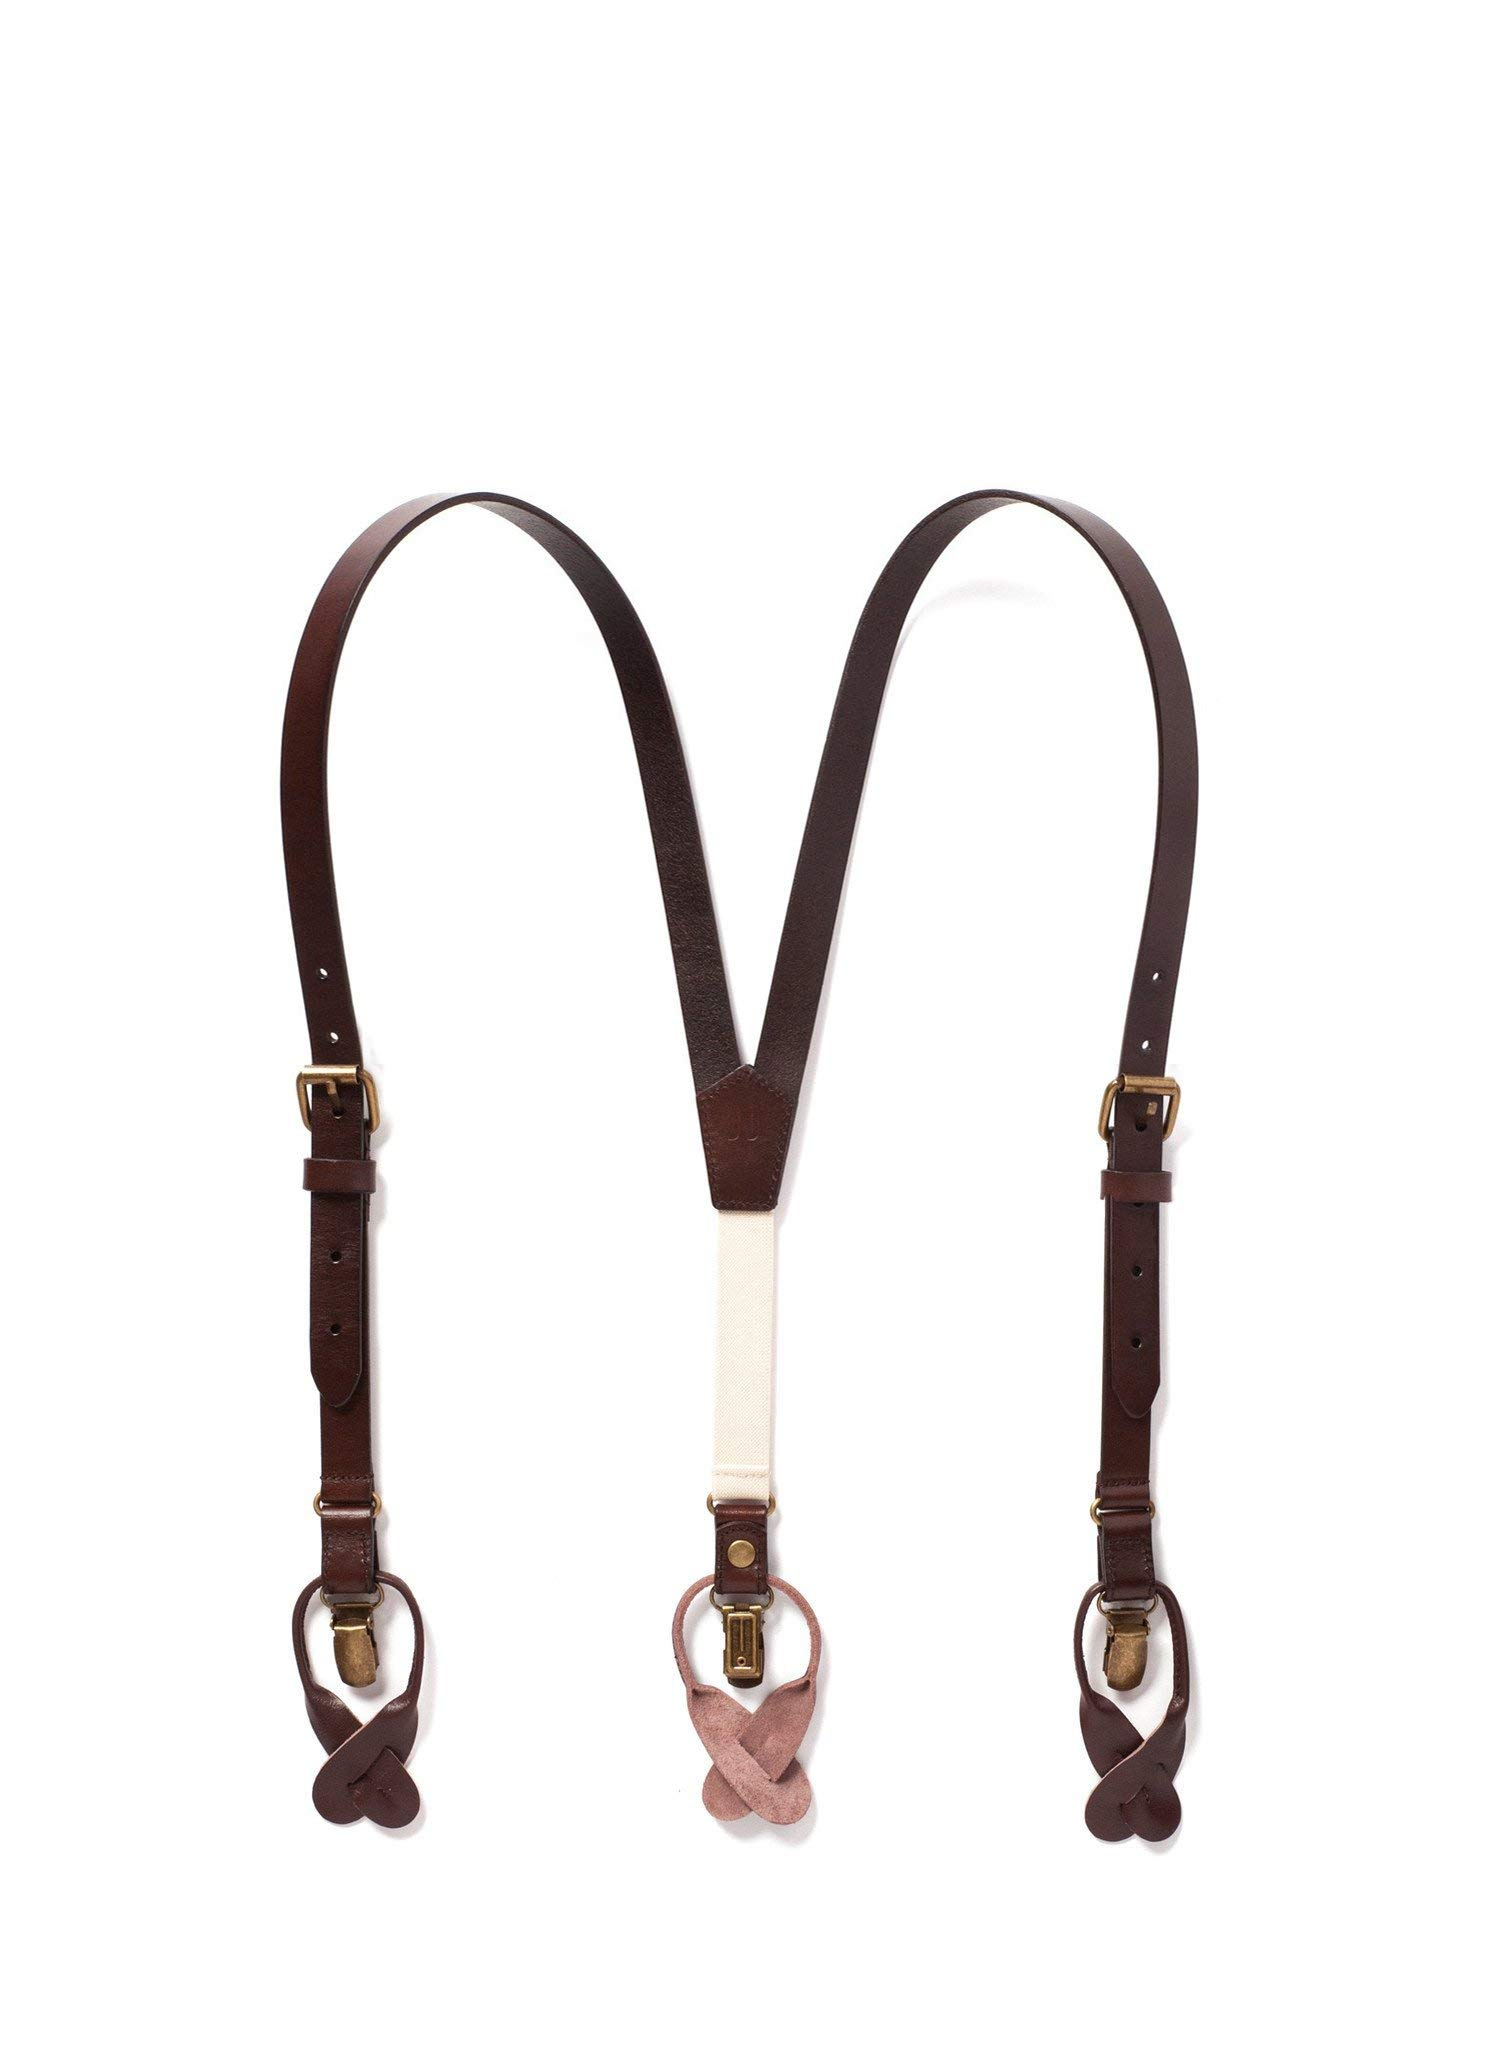 JJ SUSPENDERS Genuine Leather Suspenders For Kids with Elastic Strap - Classic Y Suspenders for Boys & Toddlers (Chestnut Java - Brown)